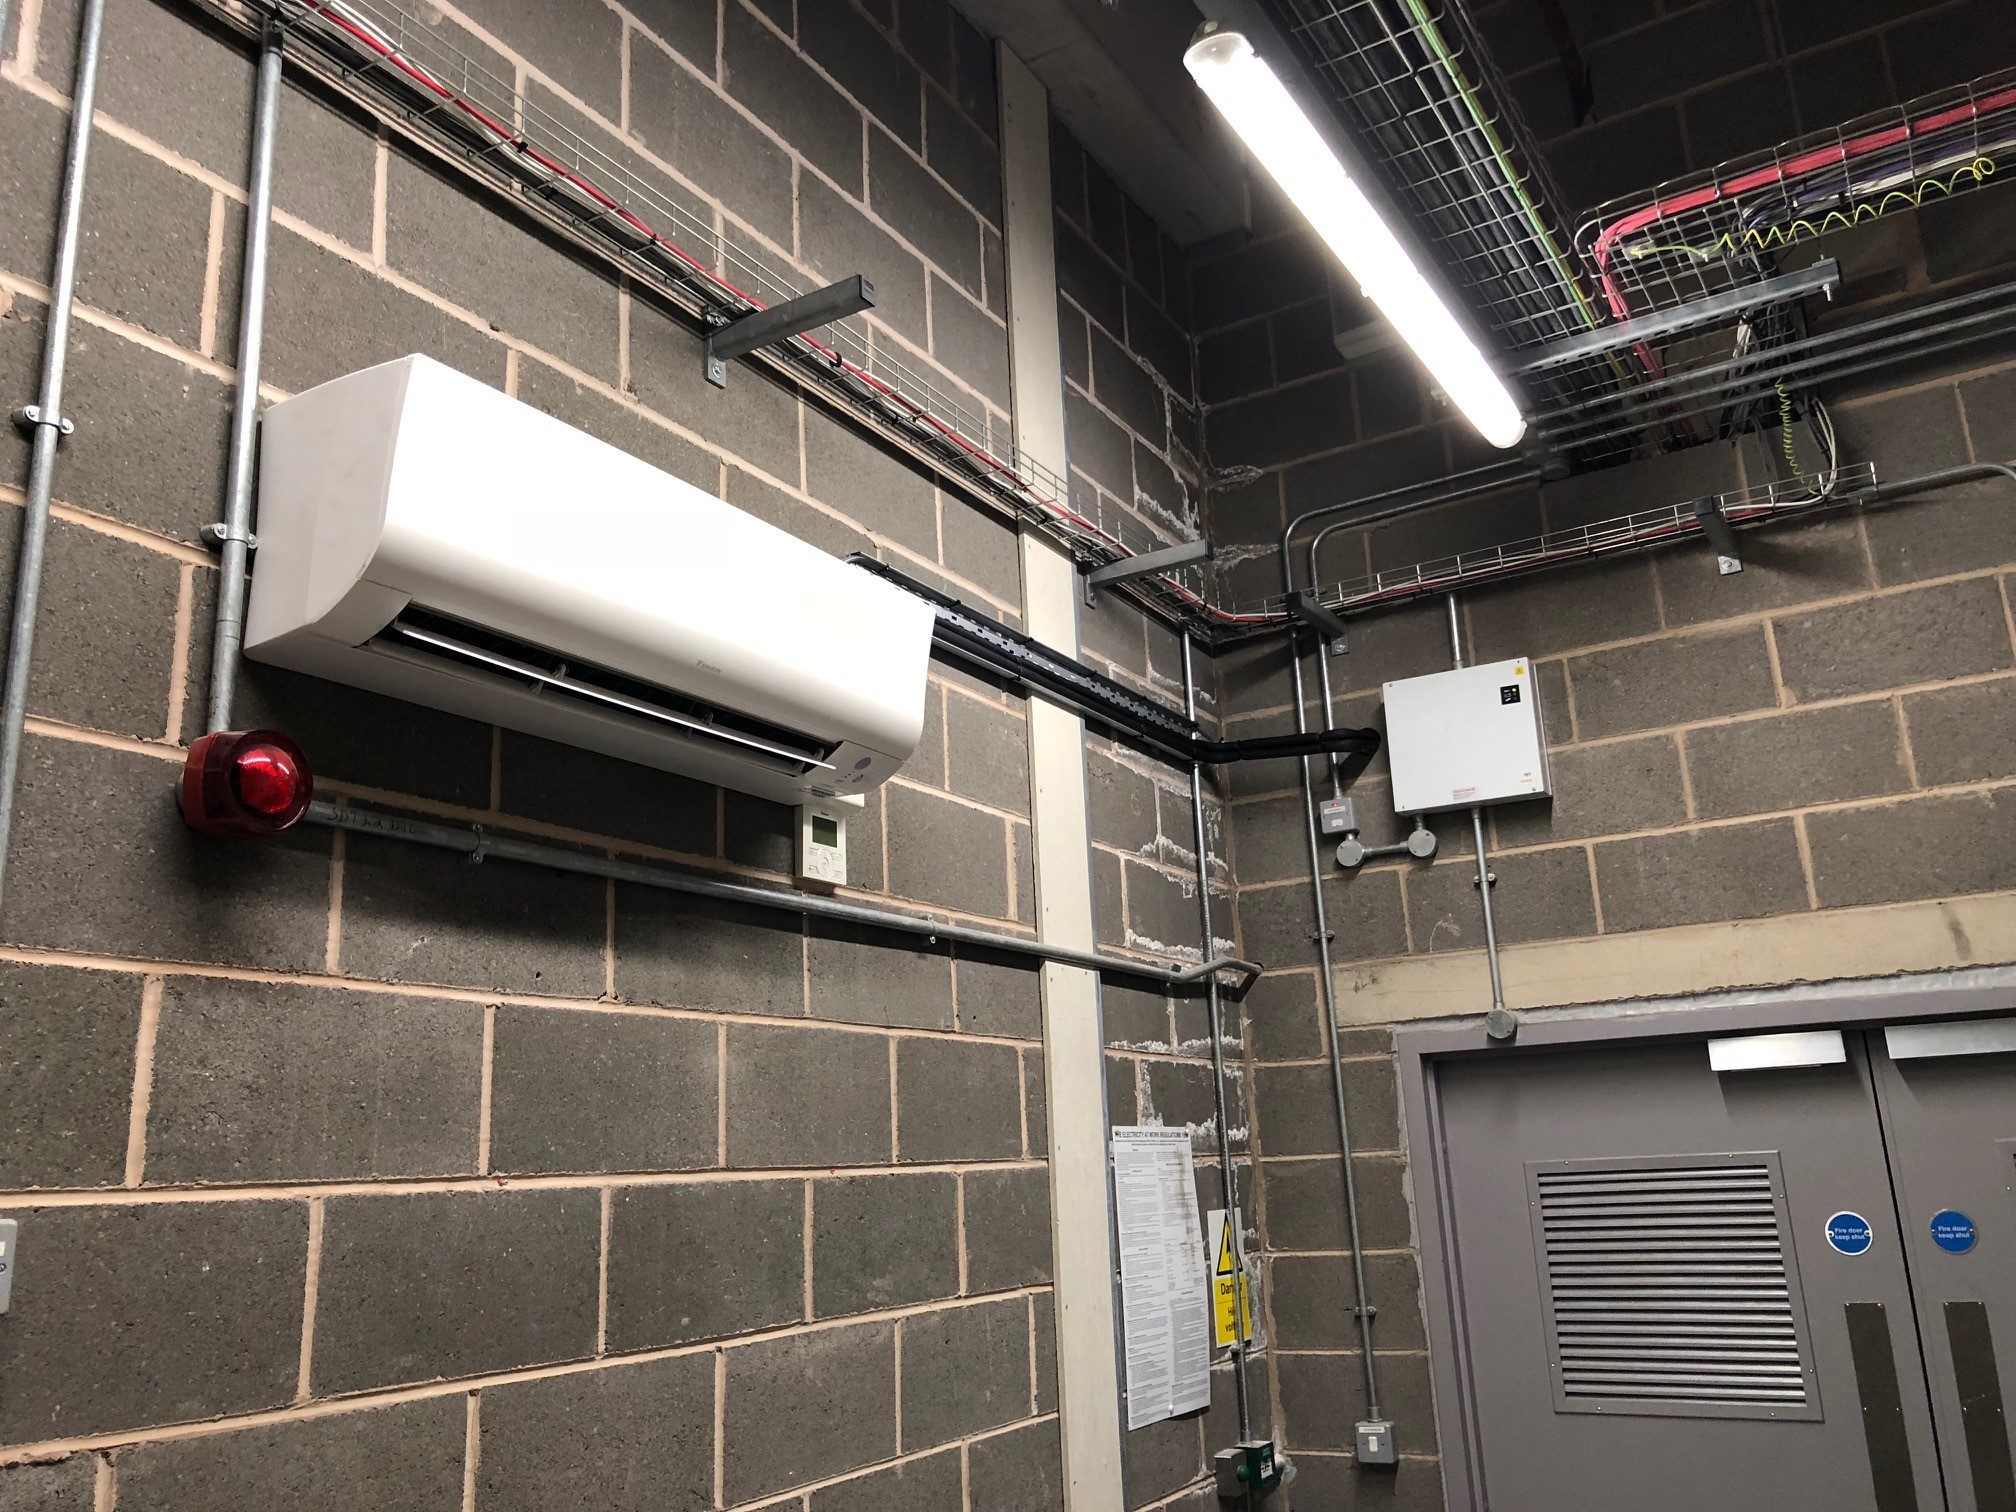 Daikin VRV and HRV hotel installation T4 Heathrow Airport - Aerocool Ltd - Air Conditioning - Refrigeration - HVAC